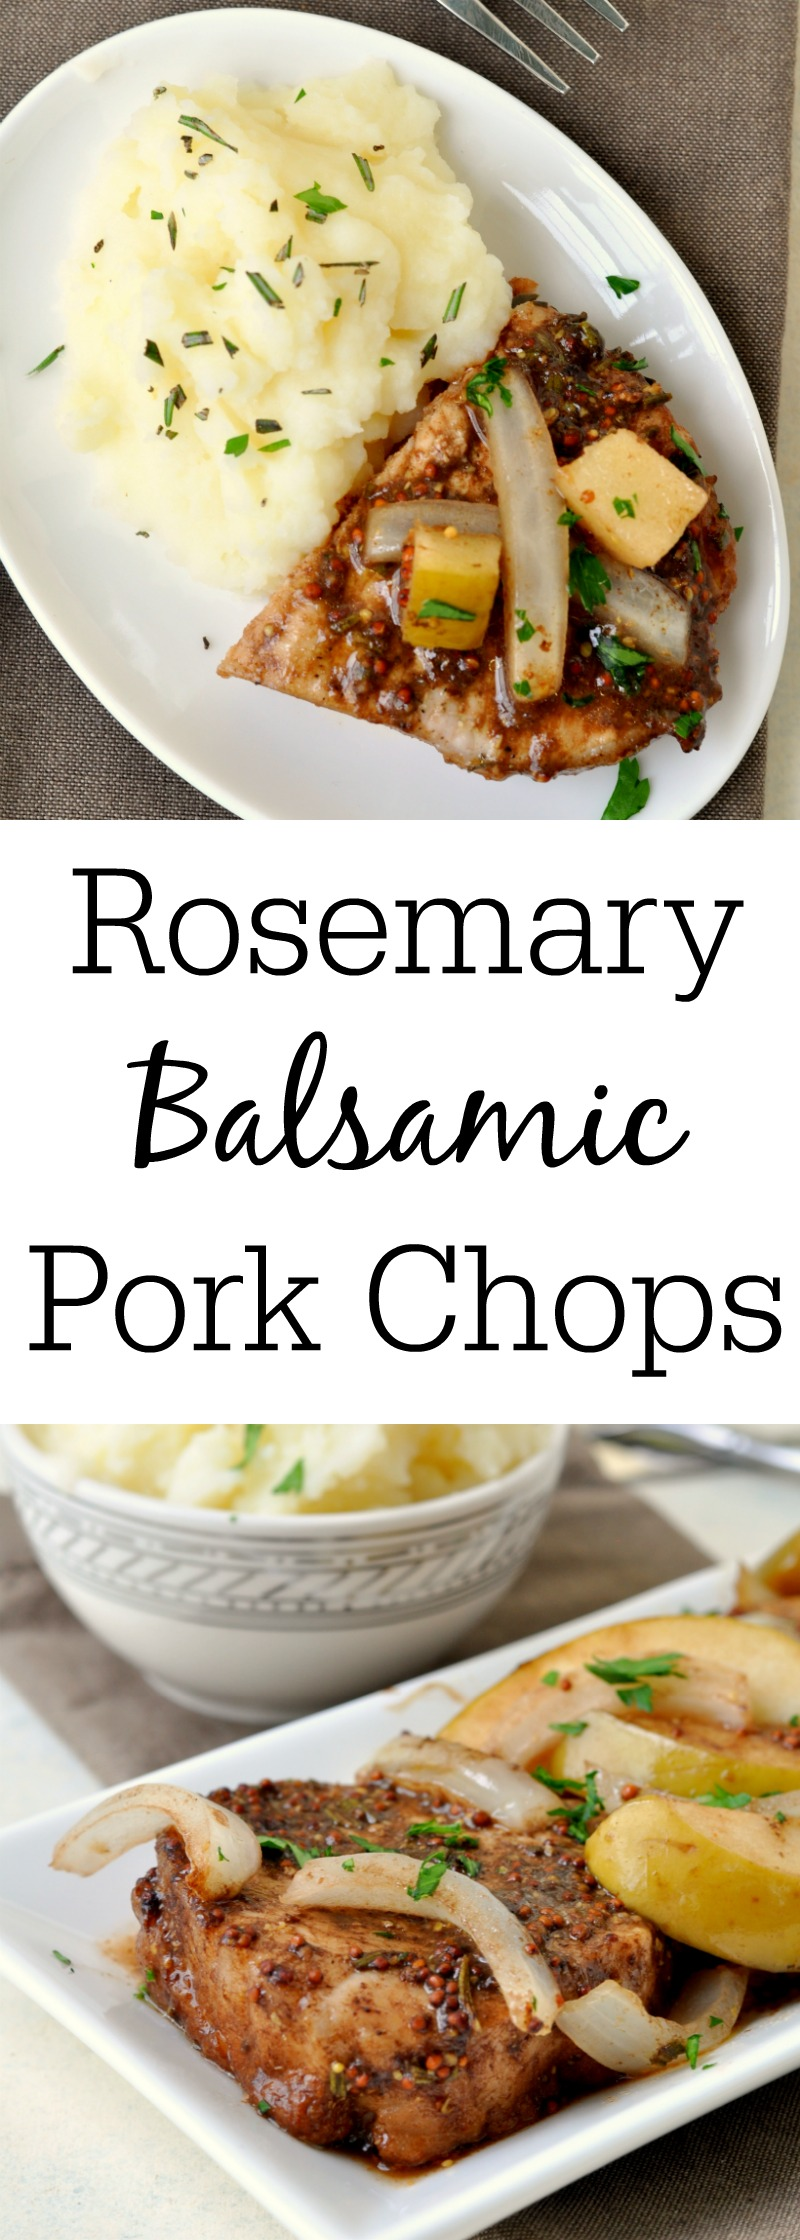 Rosemary Balsamic Pork Chops